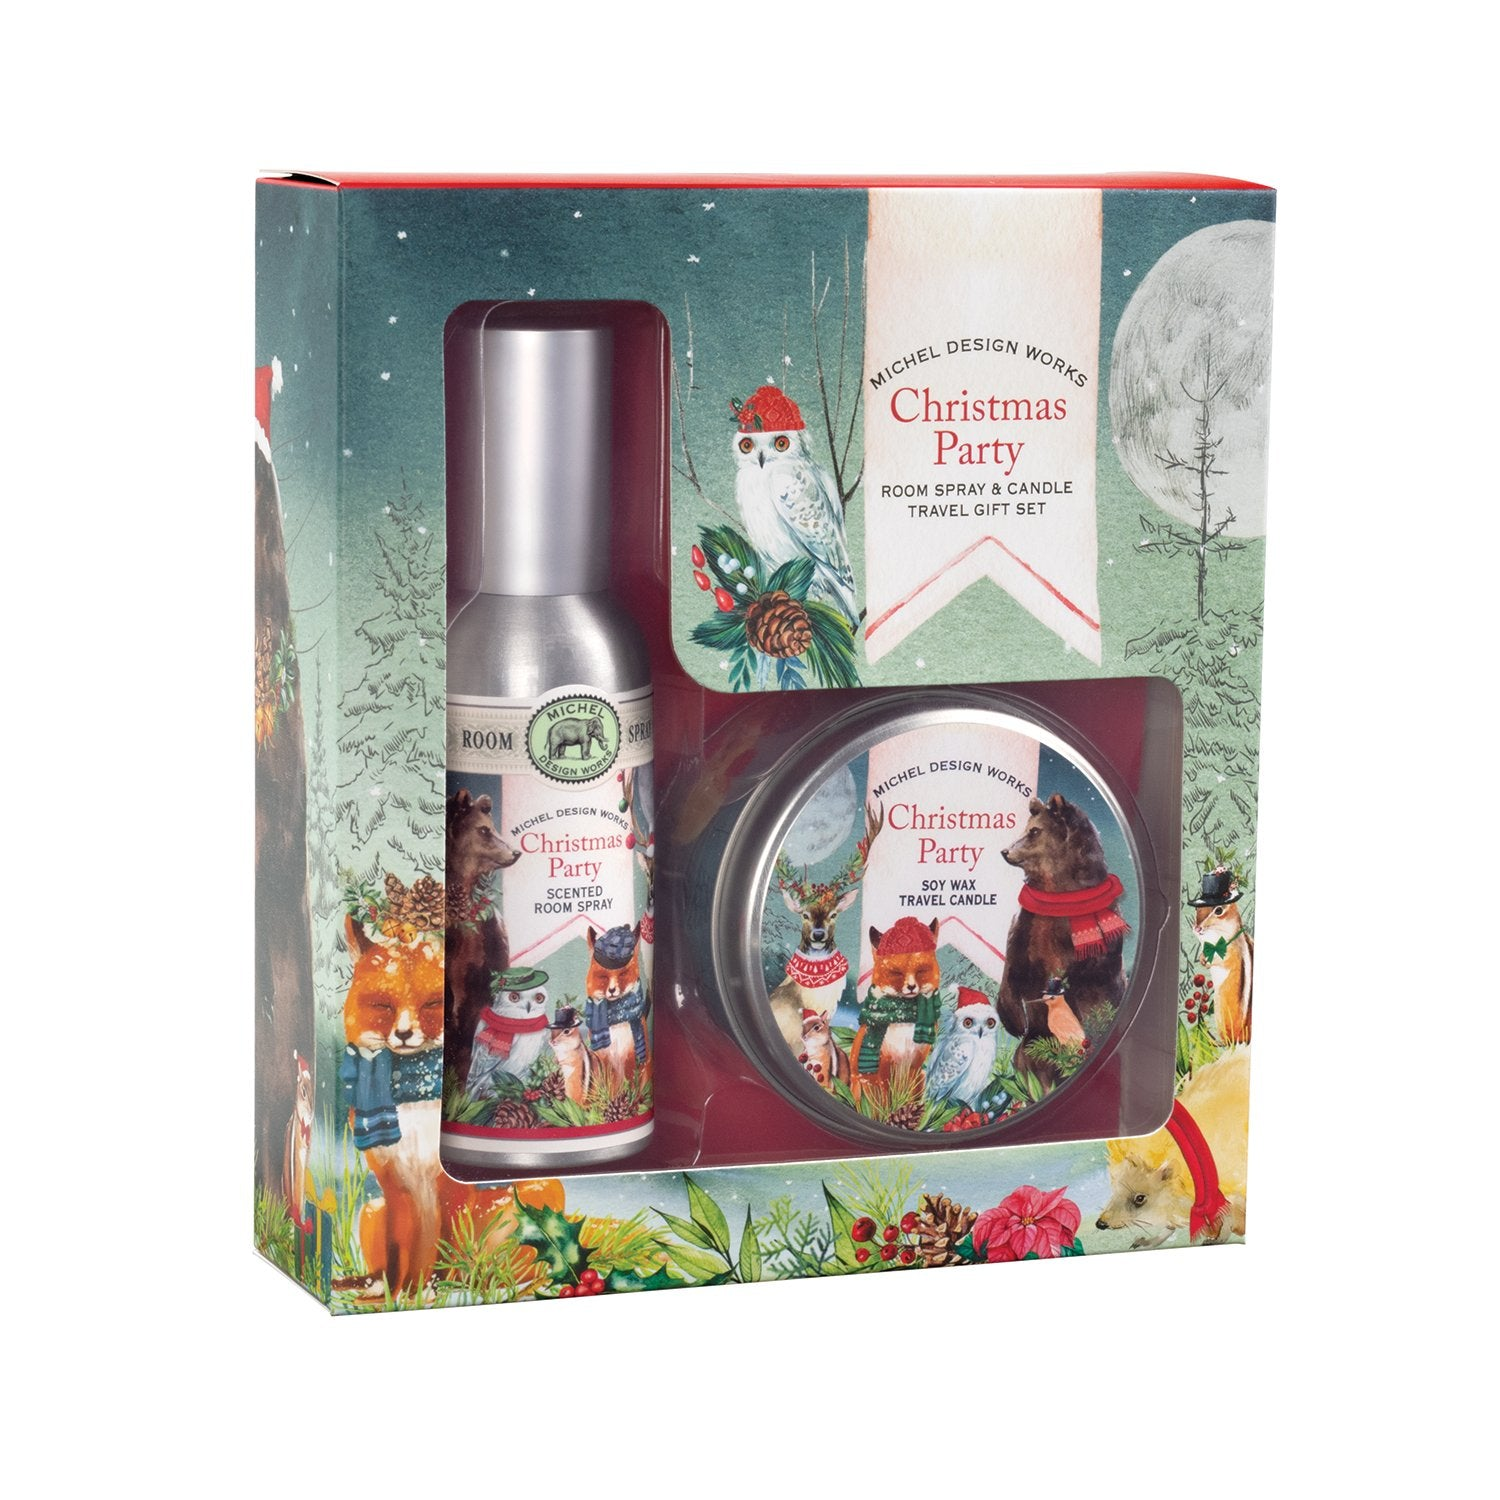 Christmas Party Room Spray and Candle Travel Gift Sets